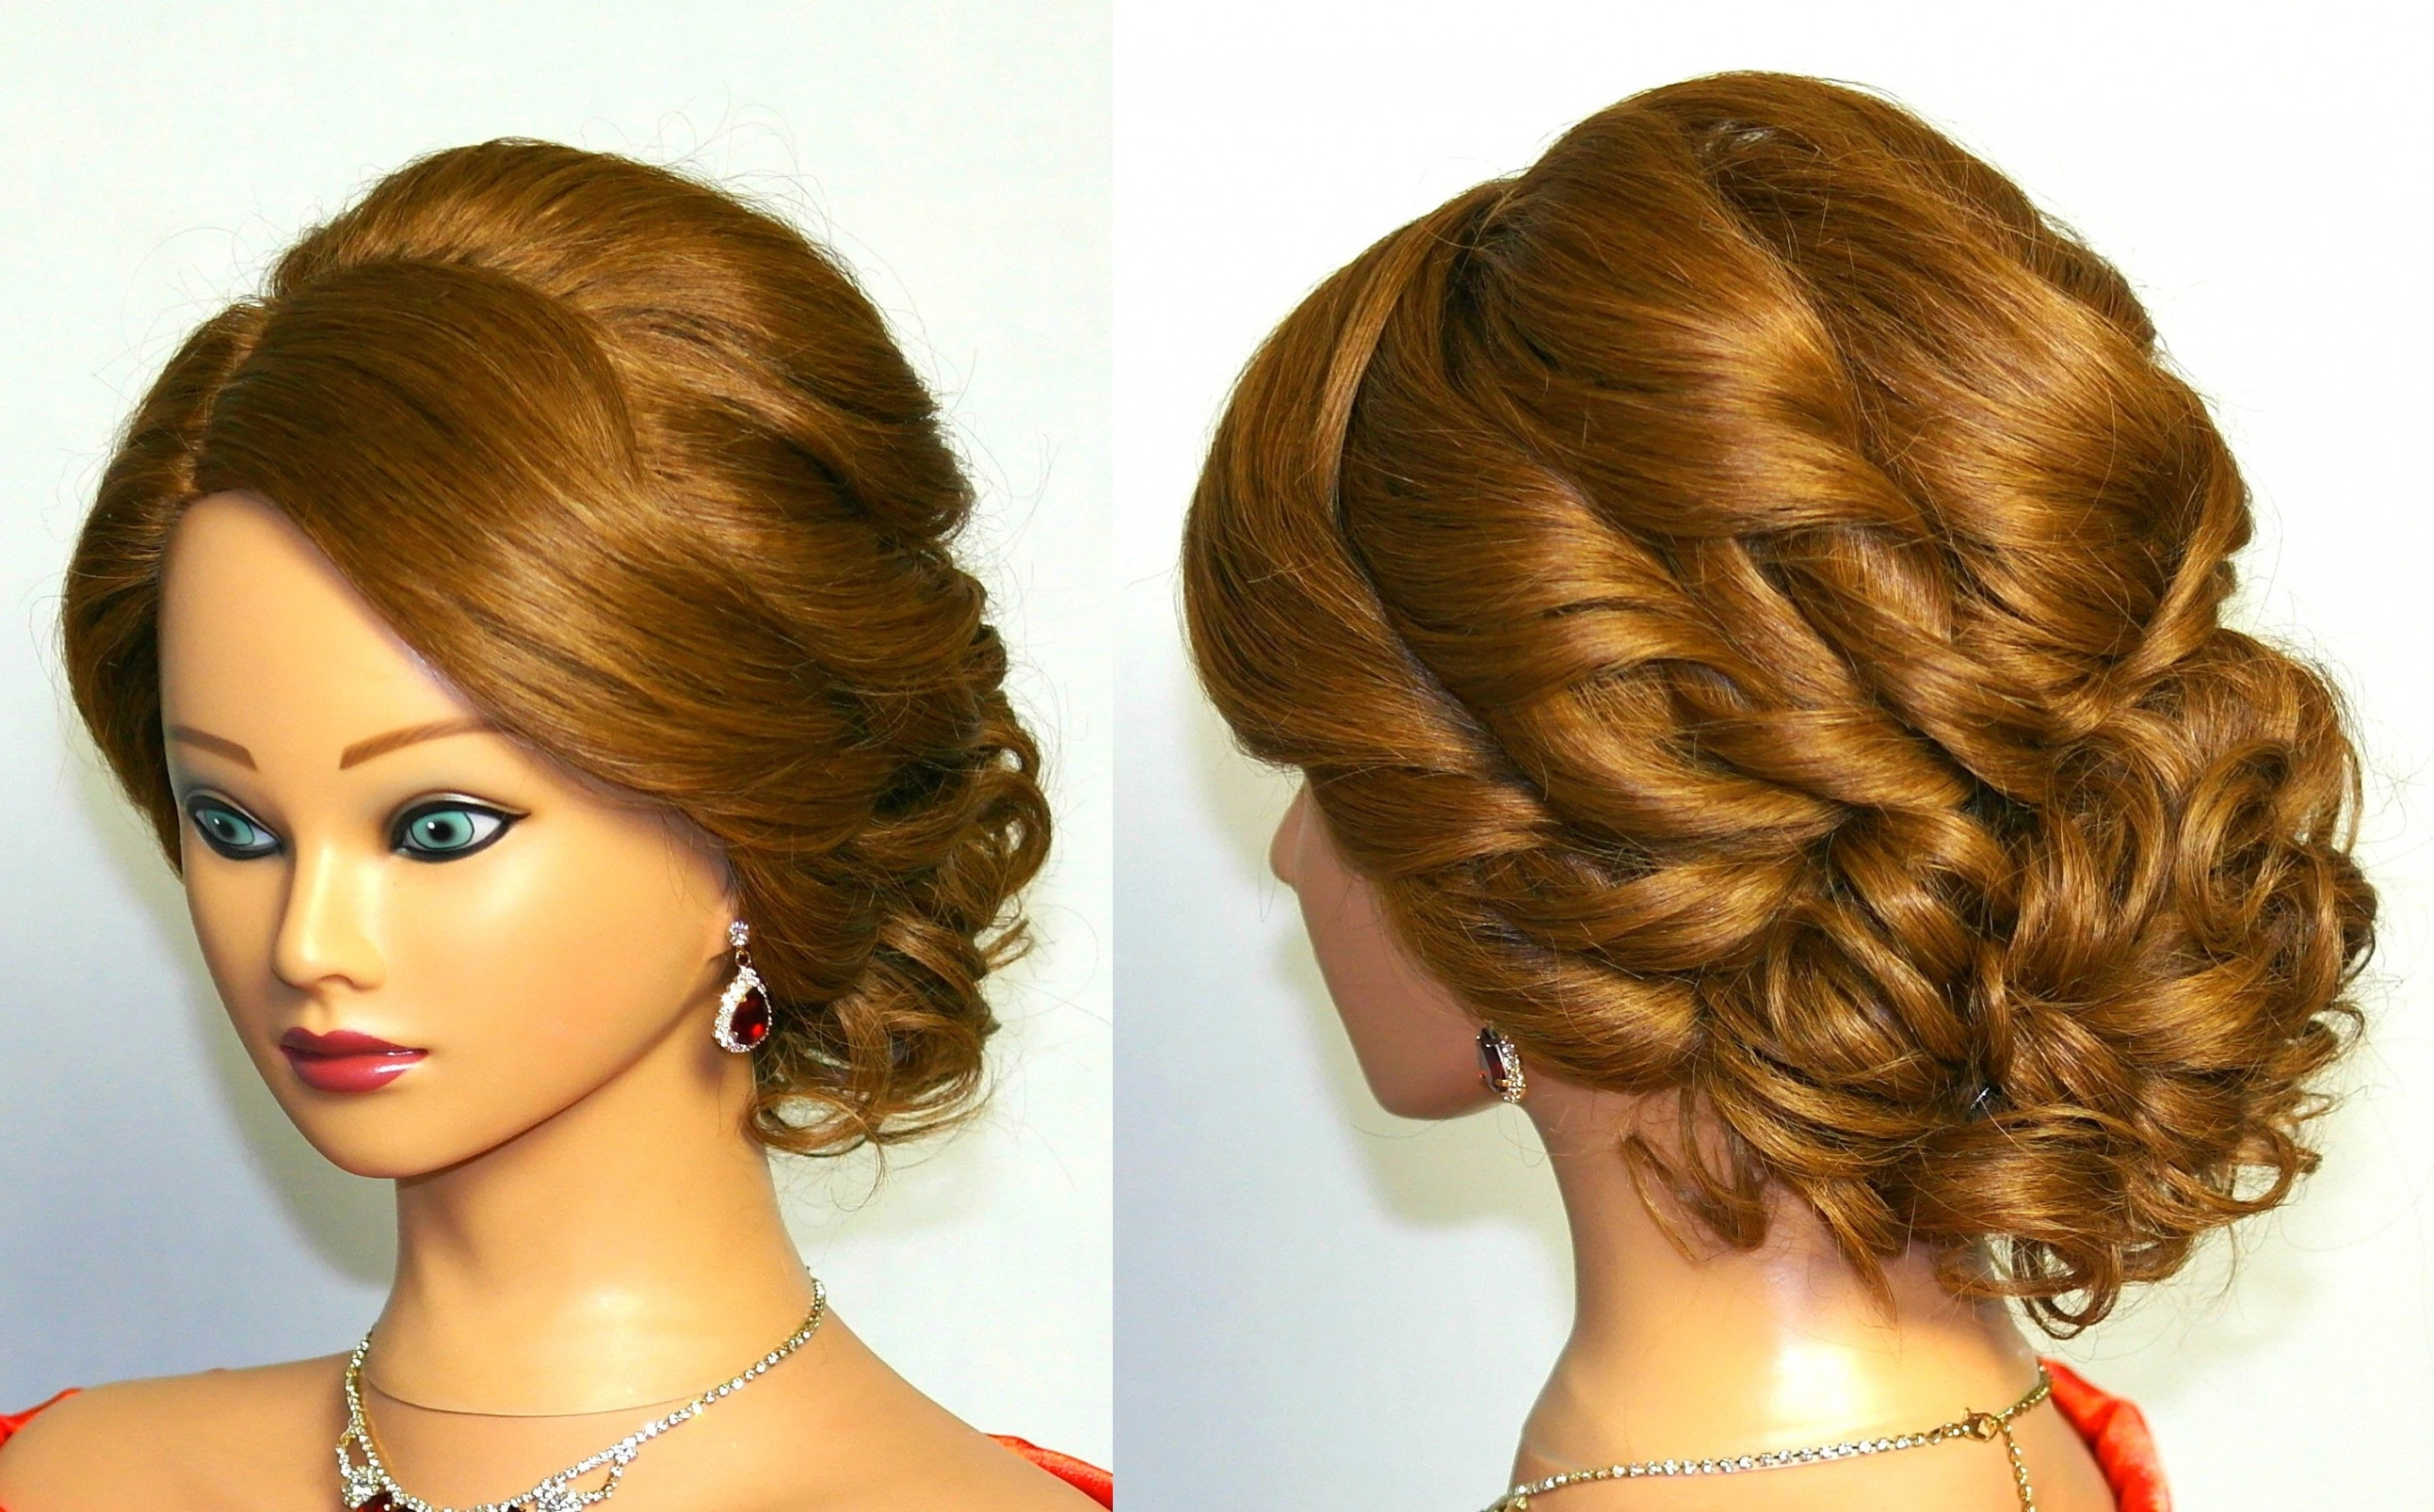 Styles For Curly Hair Updo Inside Hair Updos For Curly Hair (View 14 of 15)